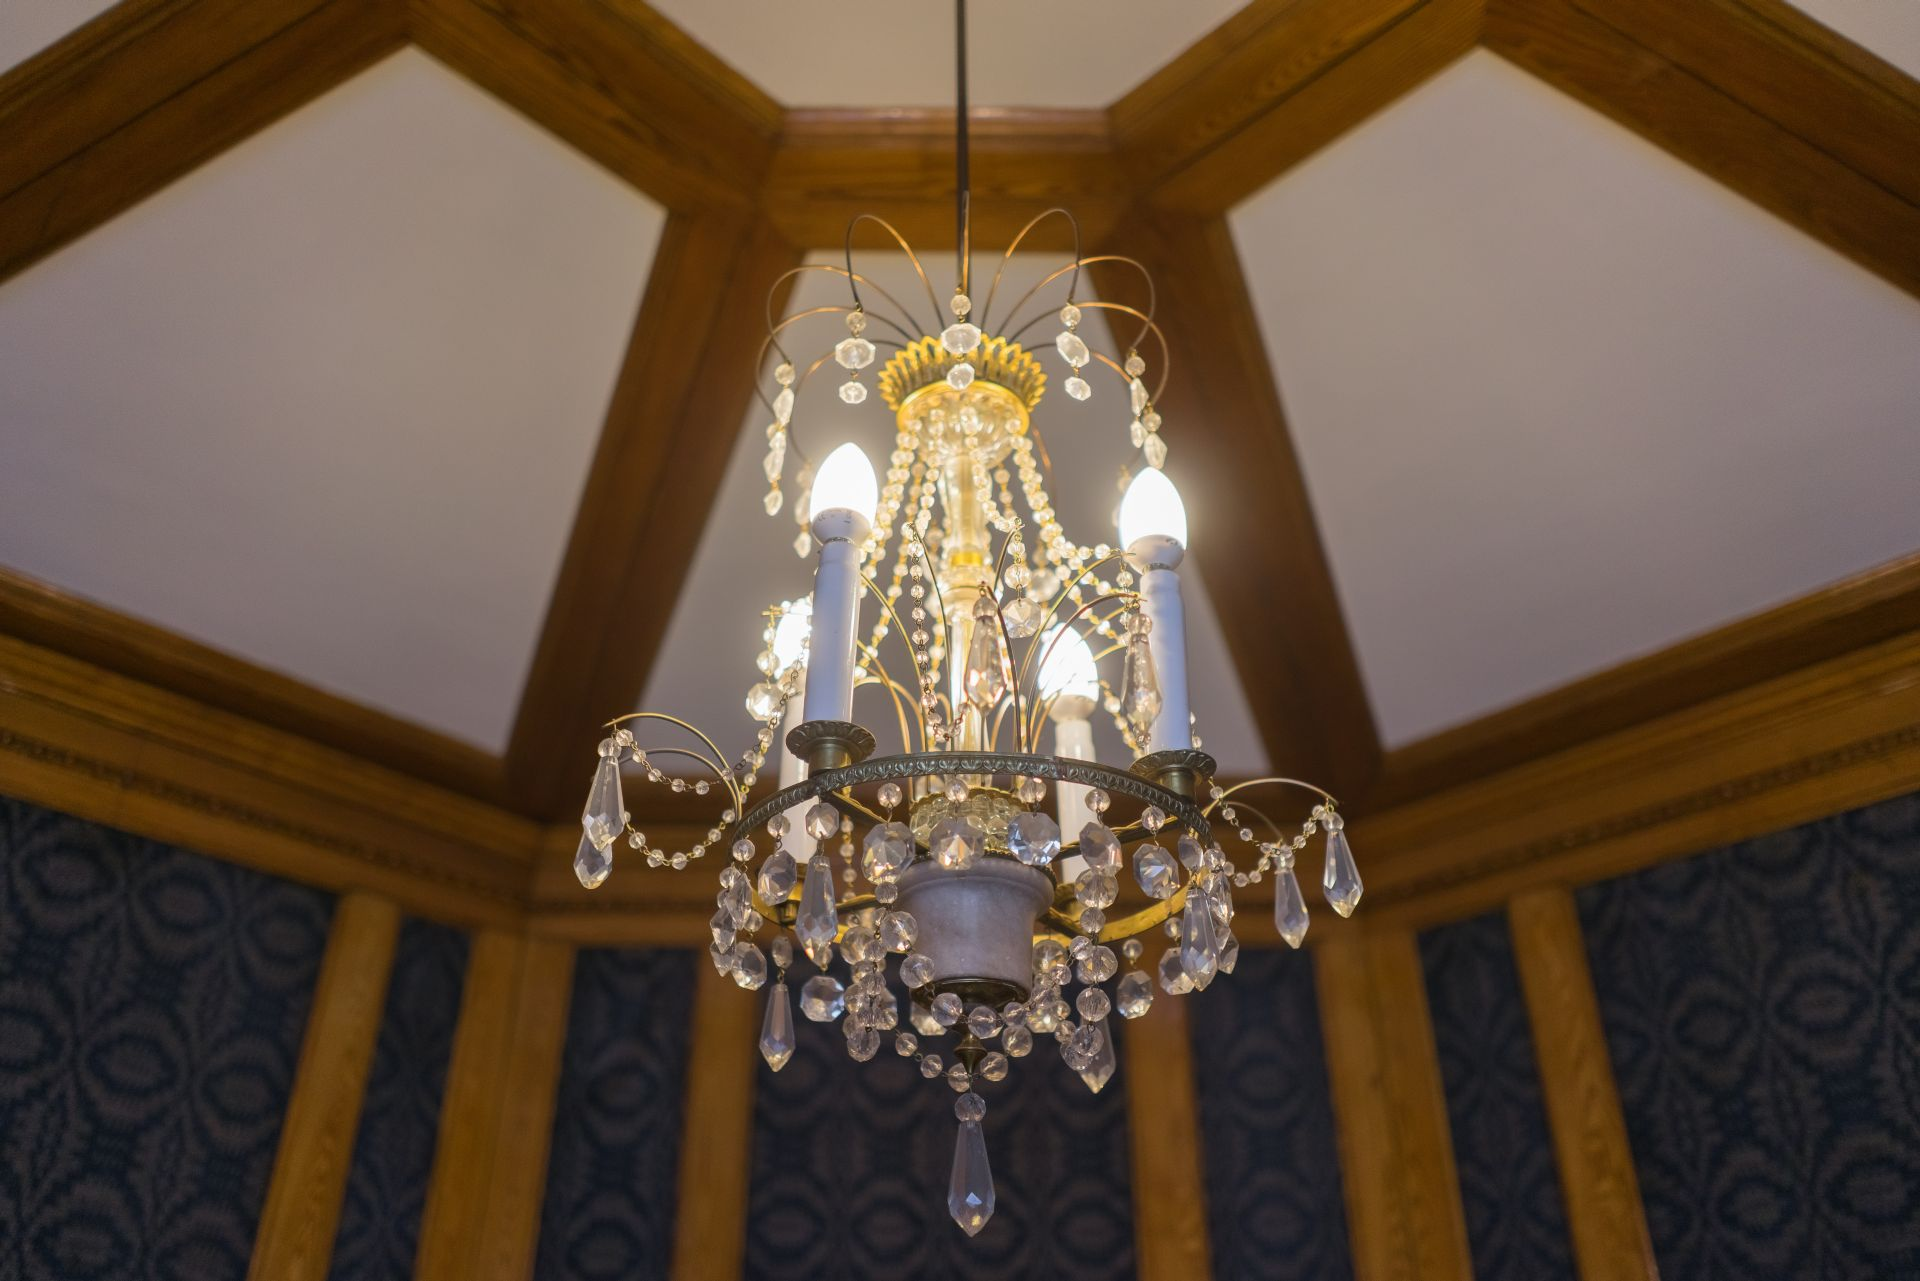 Chandelier, 1900–1929, Archdiocese of Vilnius. Photo by Povilas Jarmala, 2017